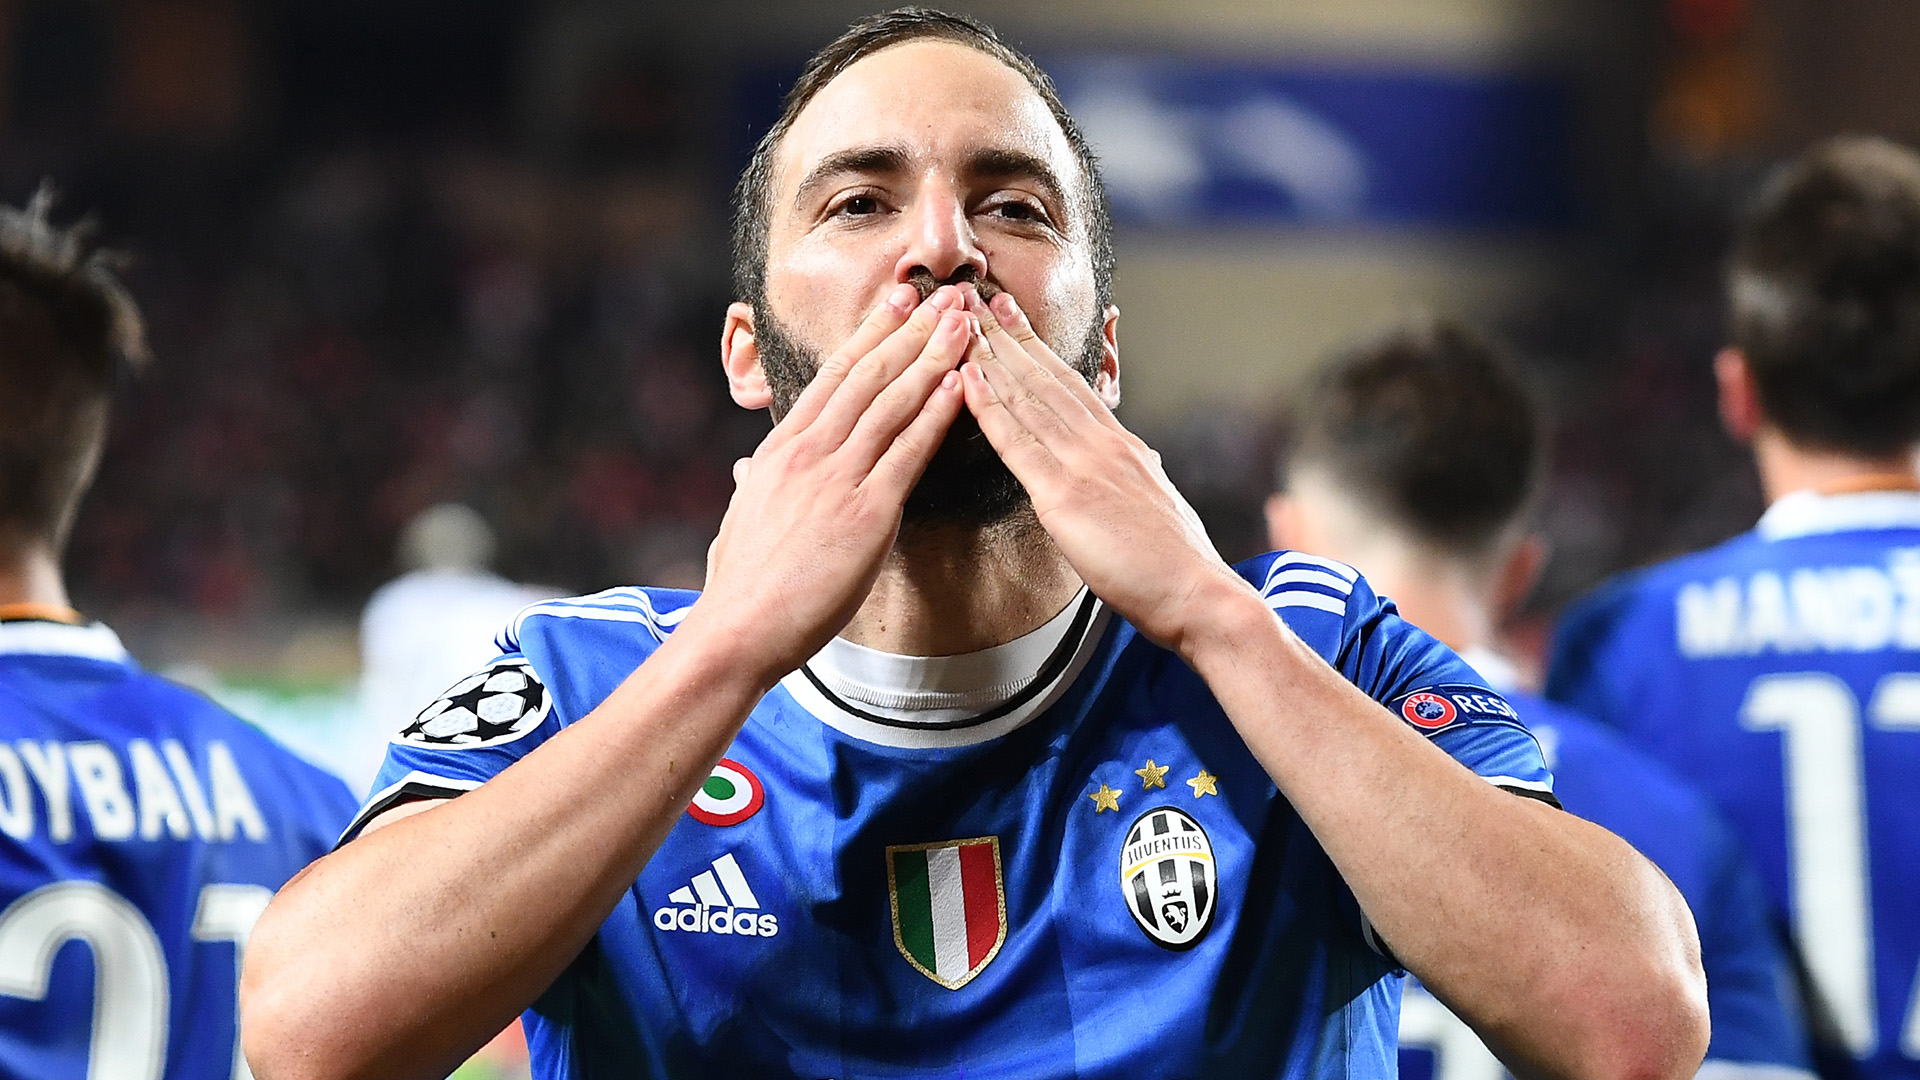 Juventus will have to be at their best in Cardiff - Bonucci